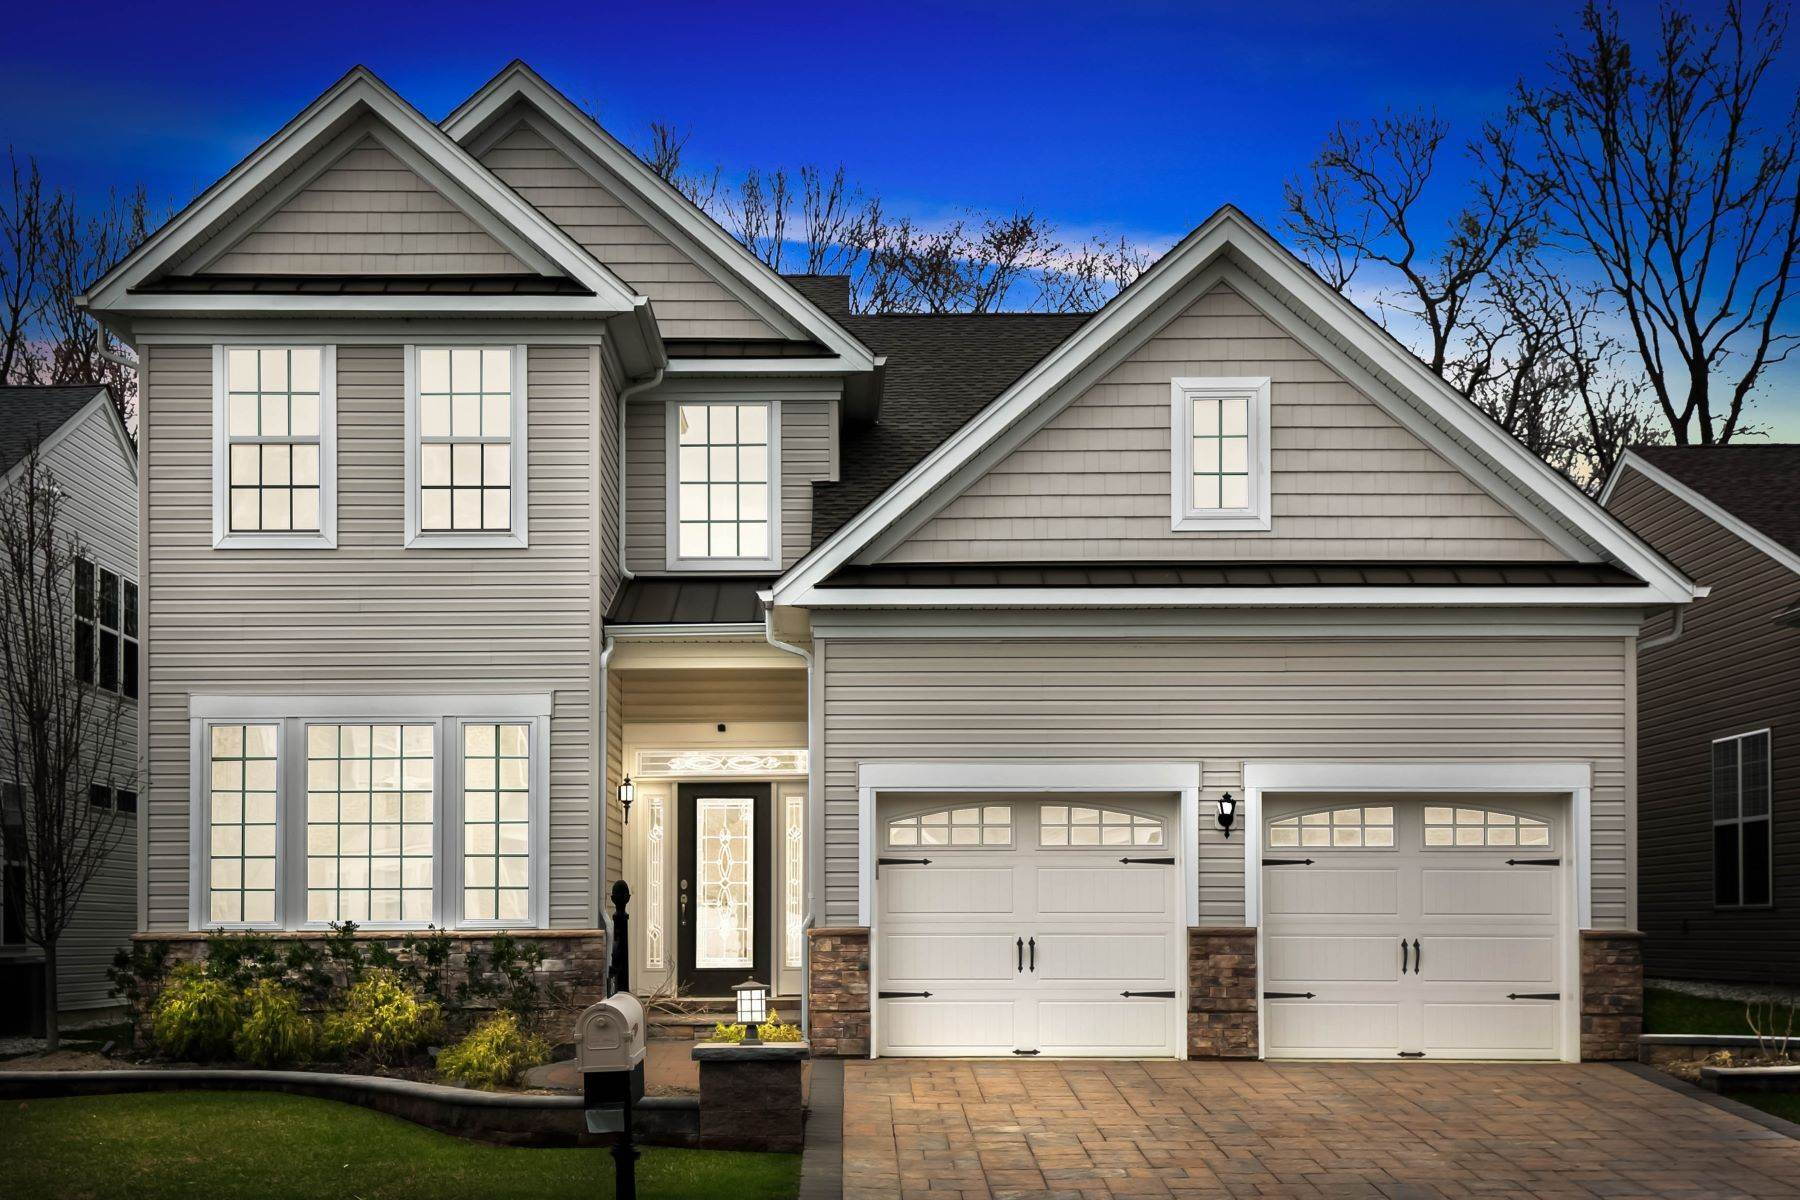 Single Family Homes for Sale at Regency at Trotters Pointe 36 Sunset Drive Tinton Falls, New Jersey 07724 United States